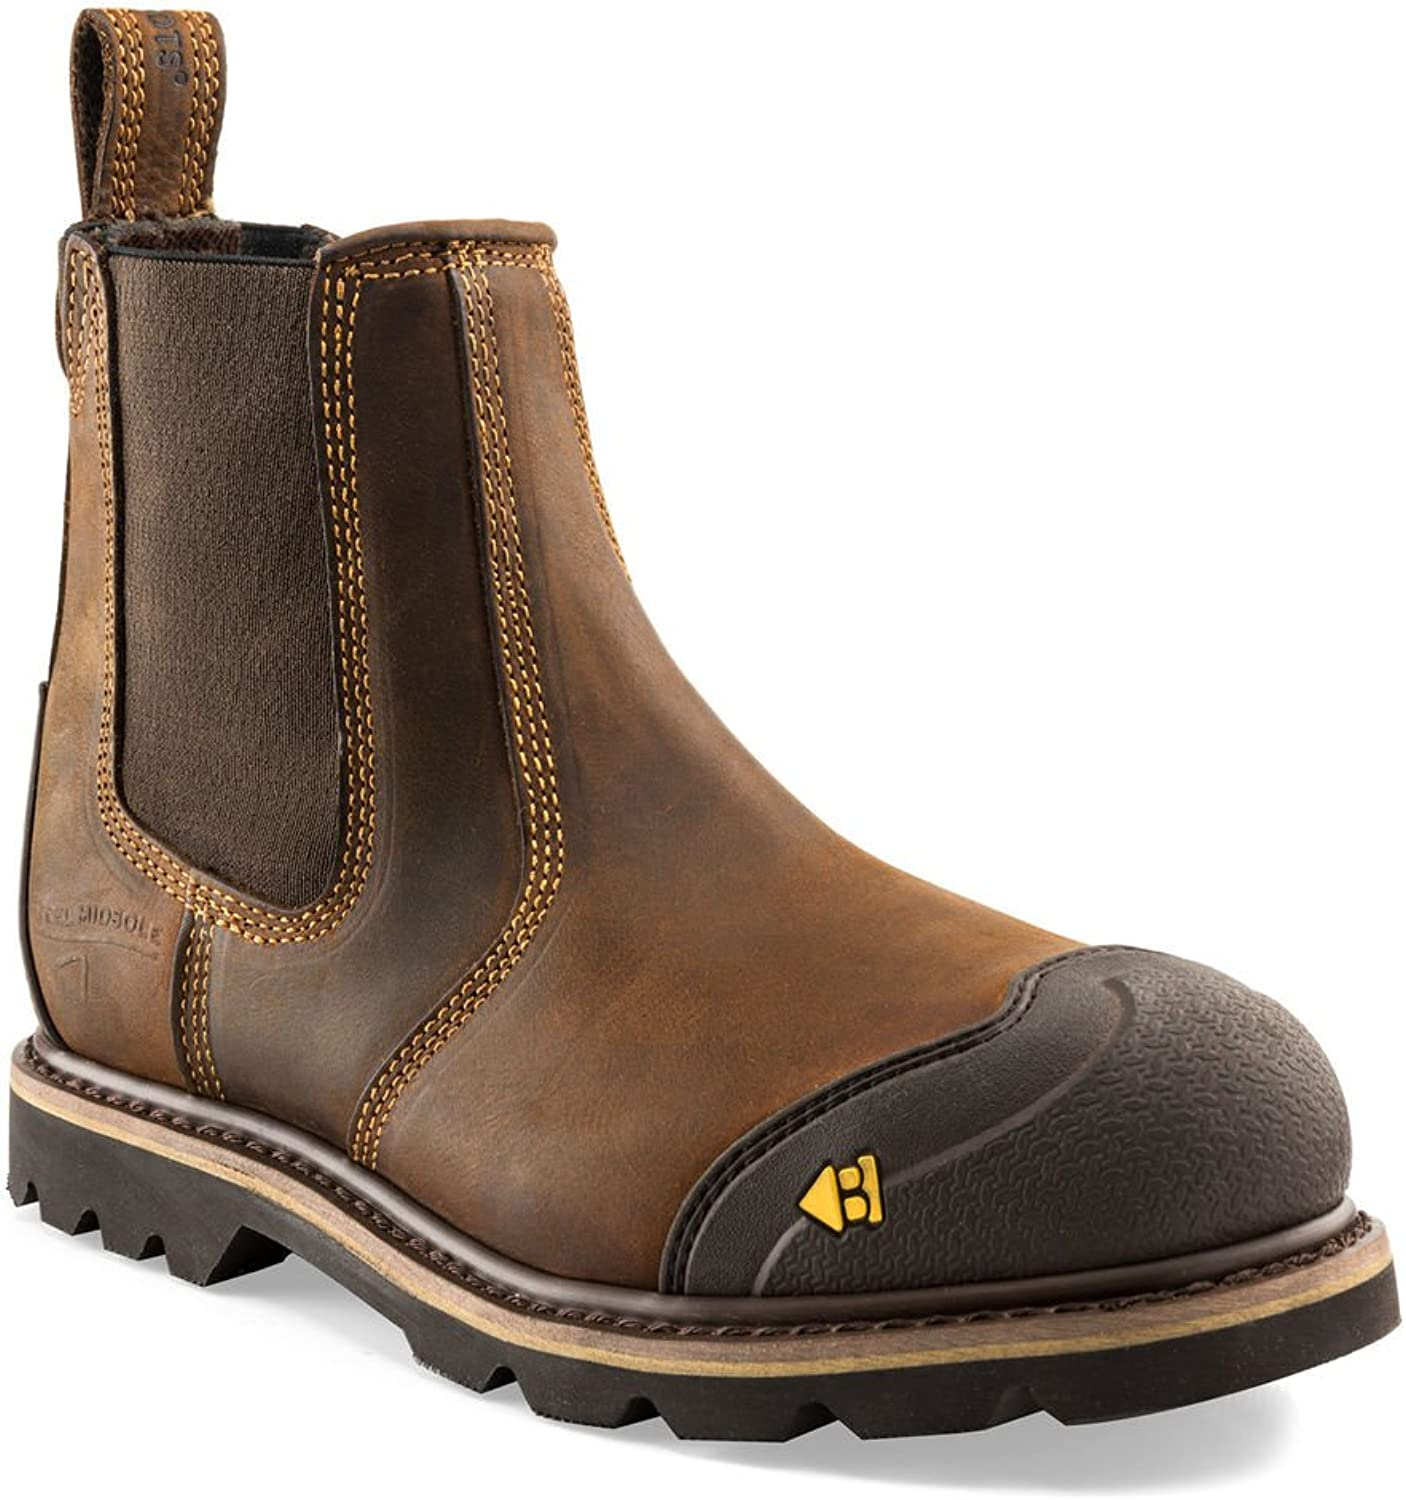 Buckler B1990SM Brown Safety Dealer Boots